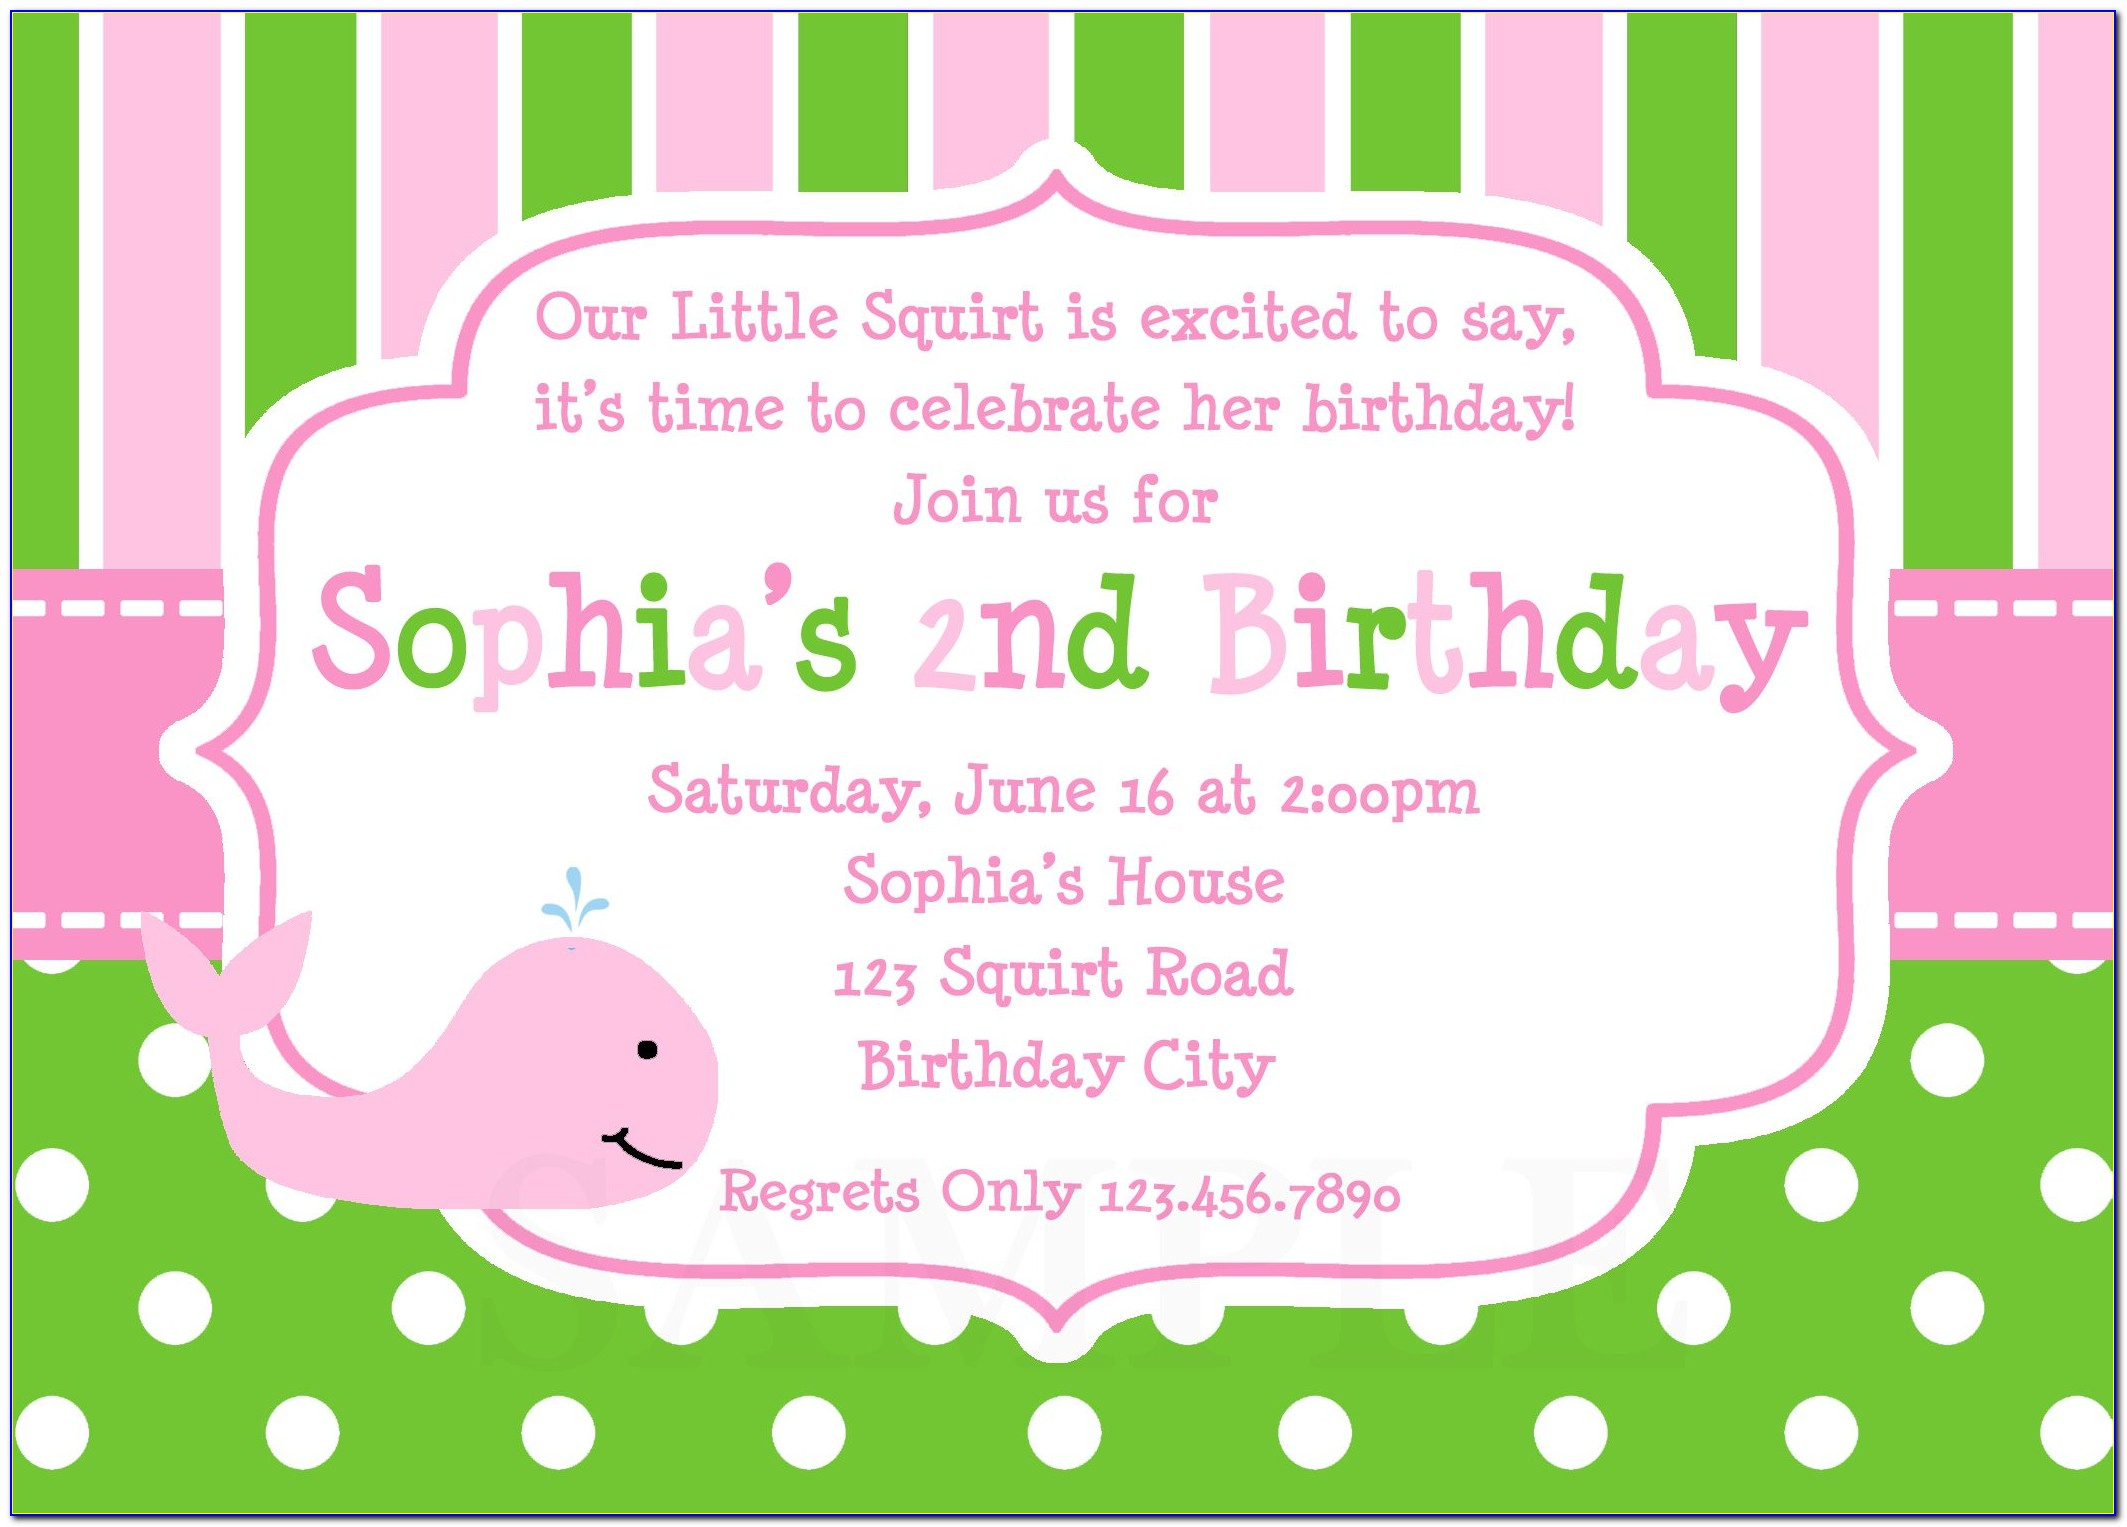 Birthday Party Invitation Card Template Free Download Vincegray2014